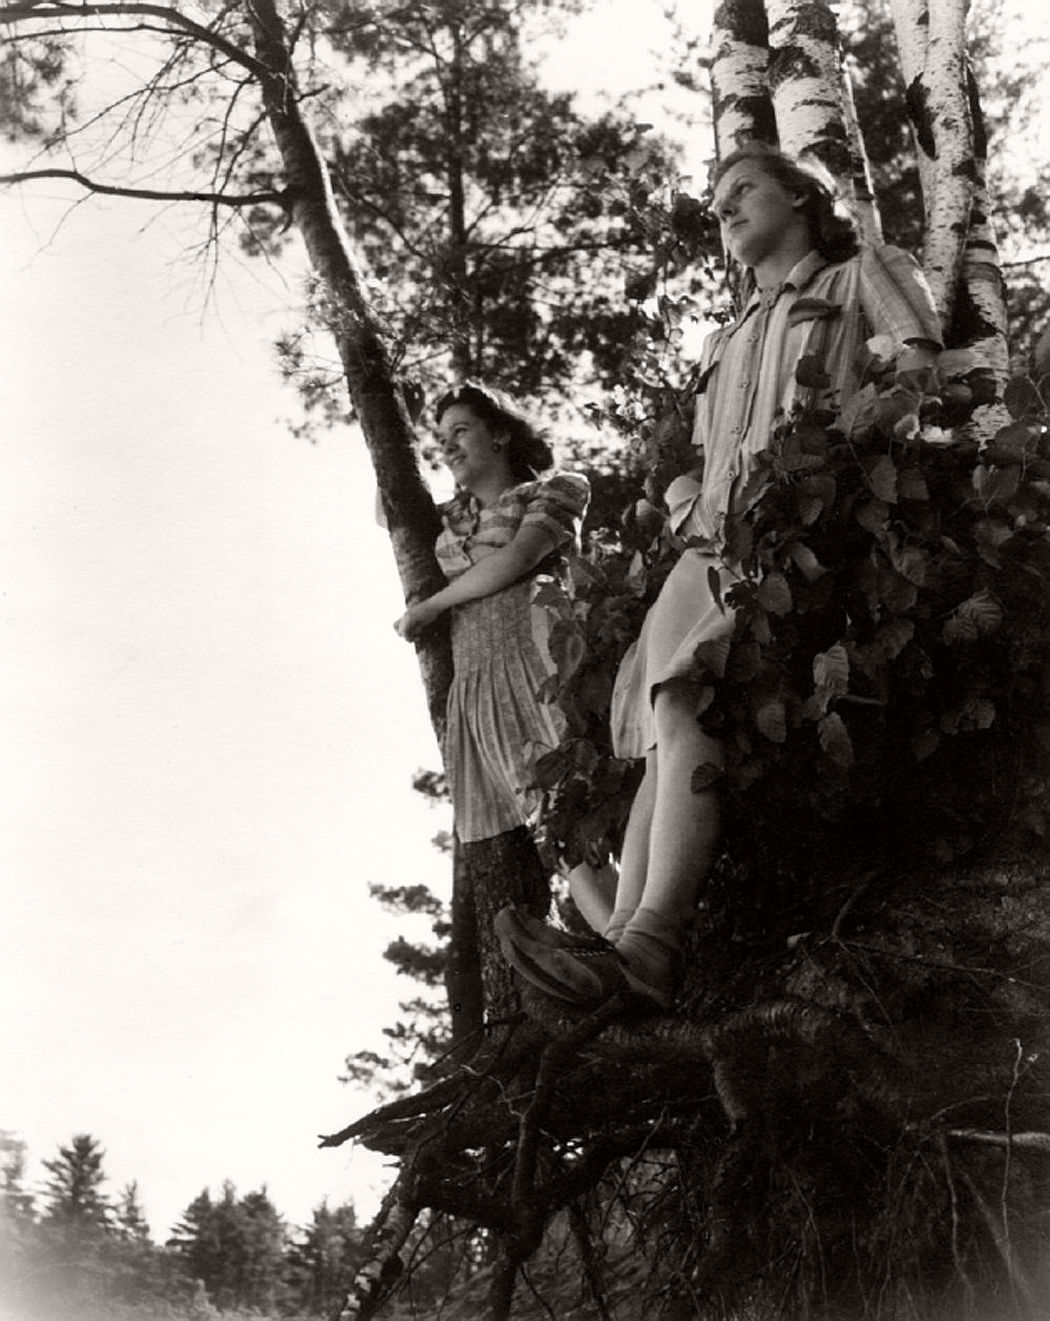 women-in-trees-hatje-cantz-06